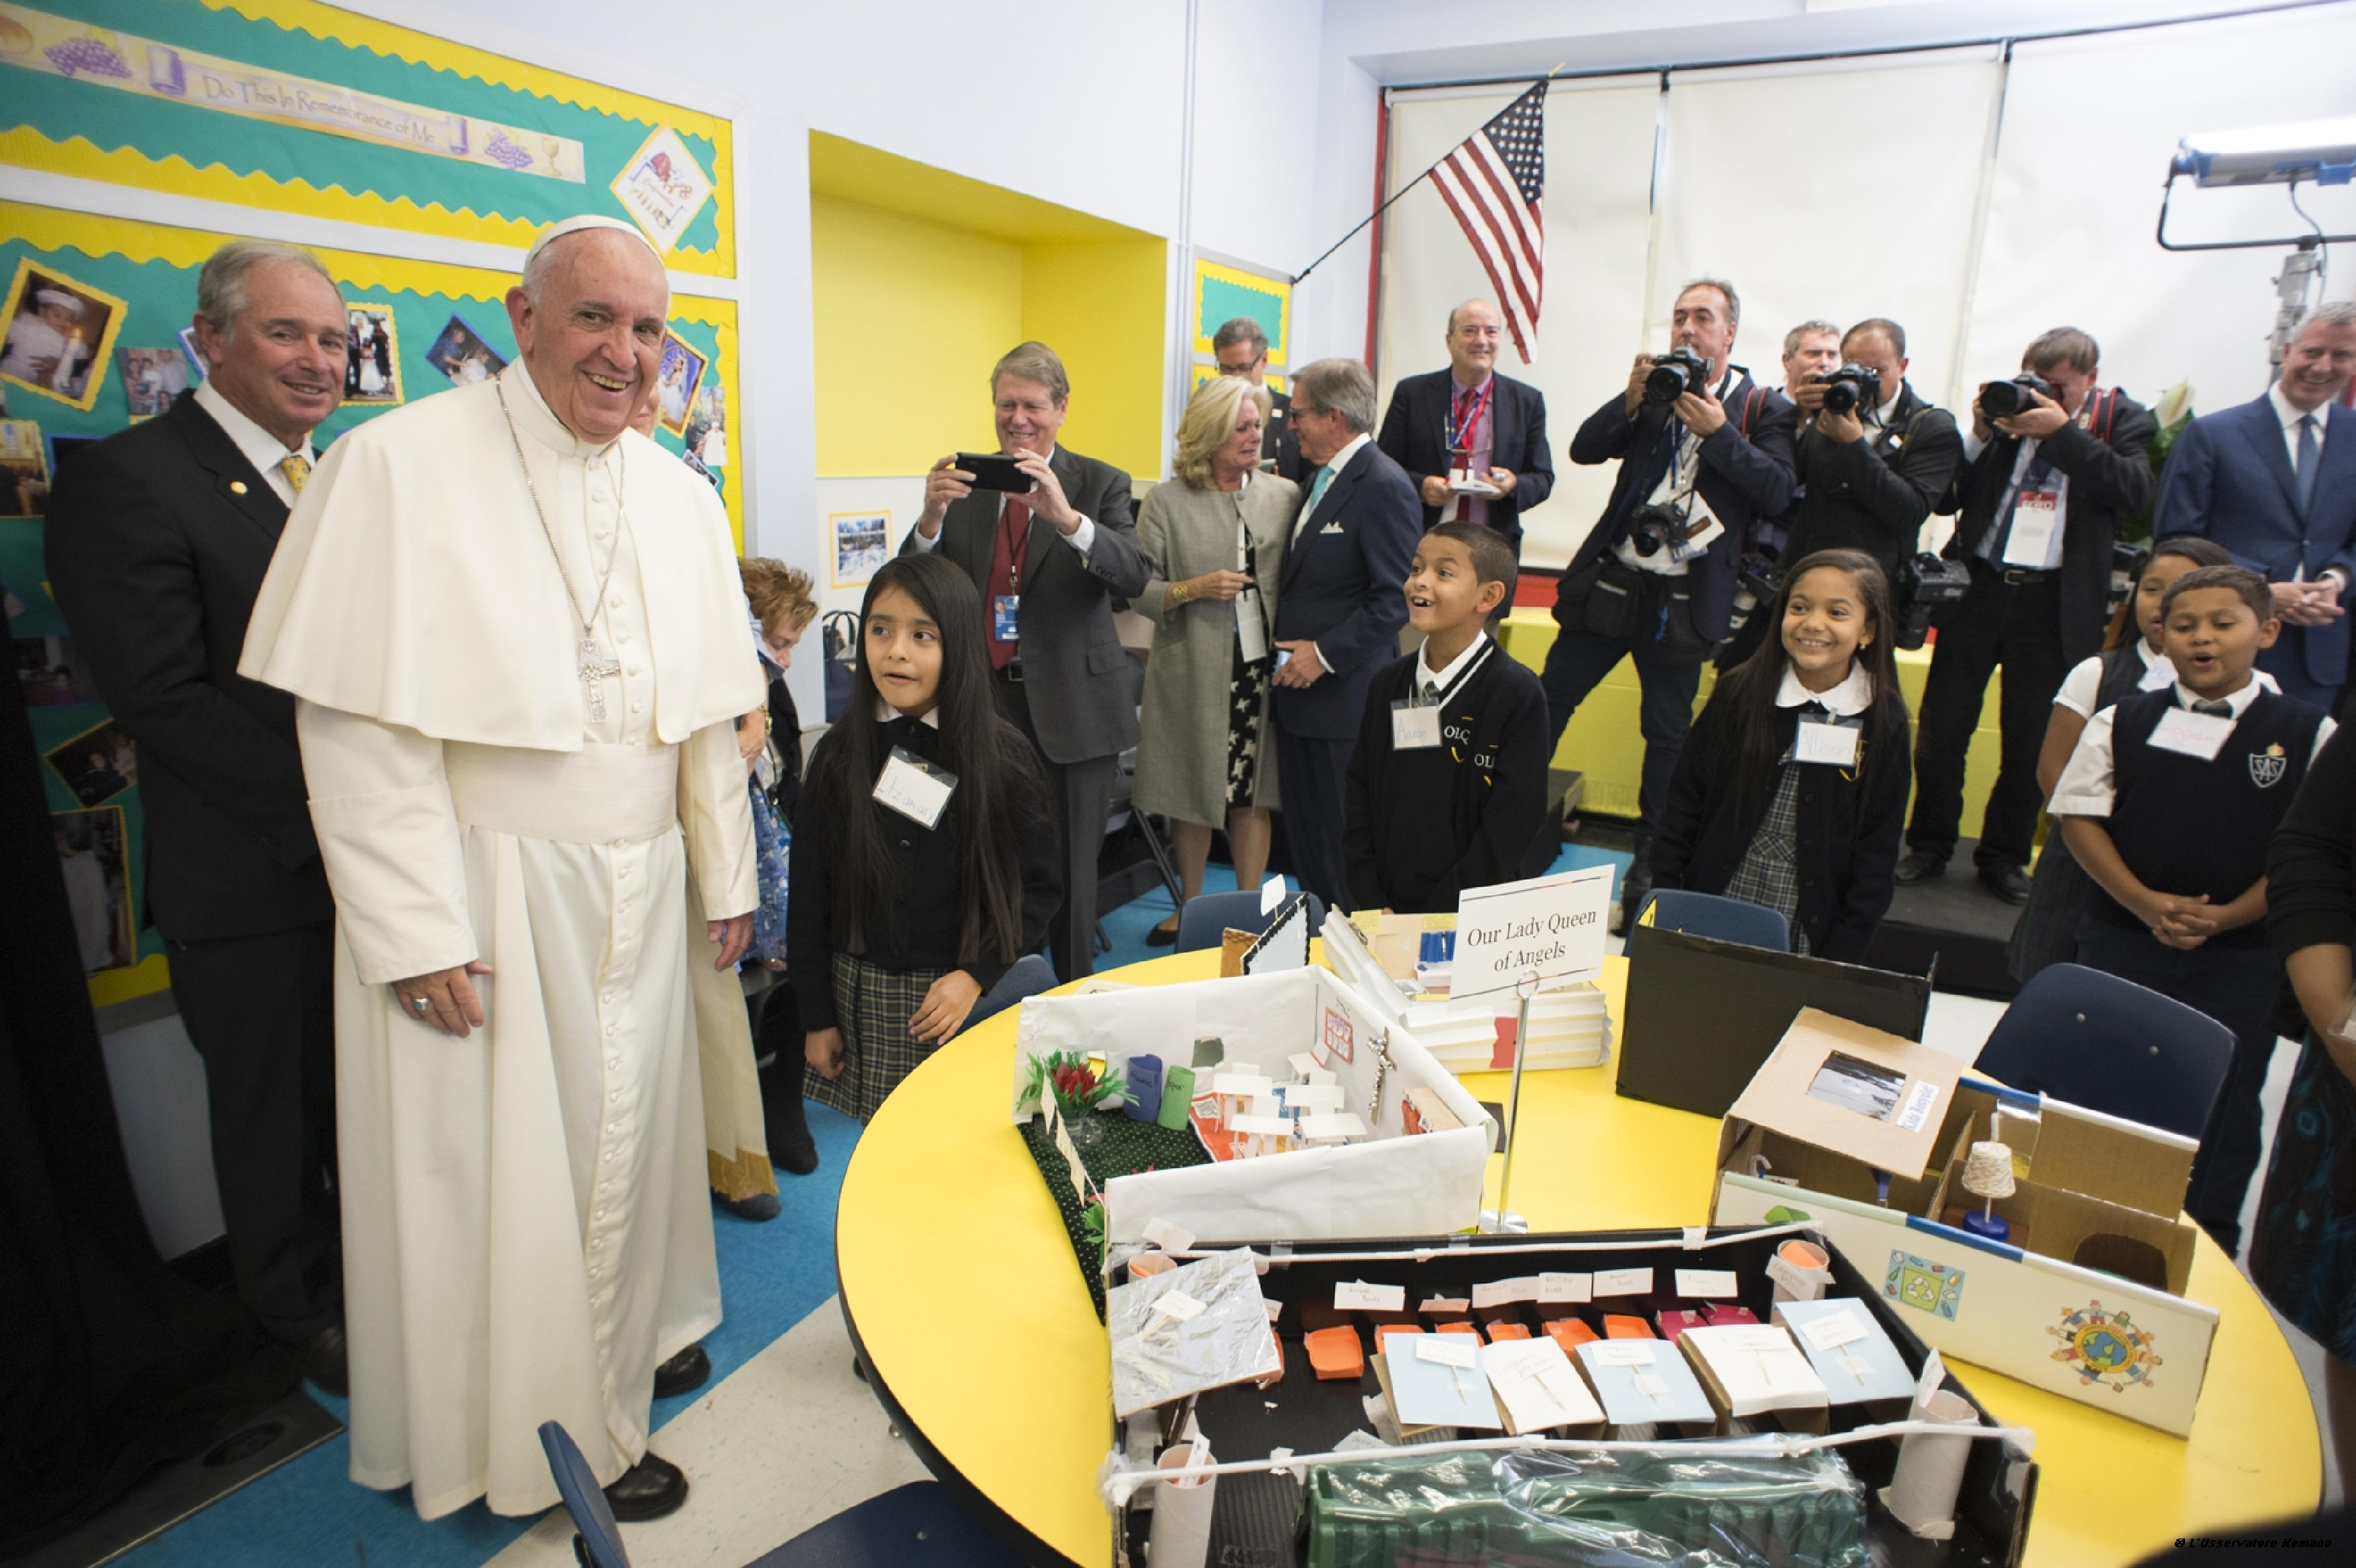 Pope Francis during his visit at Our Lady Queen of Angels School